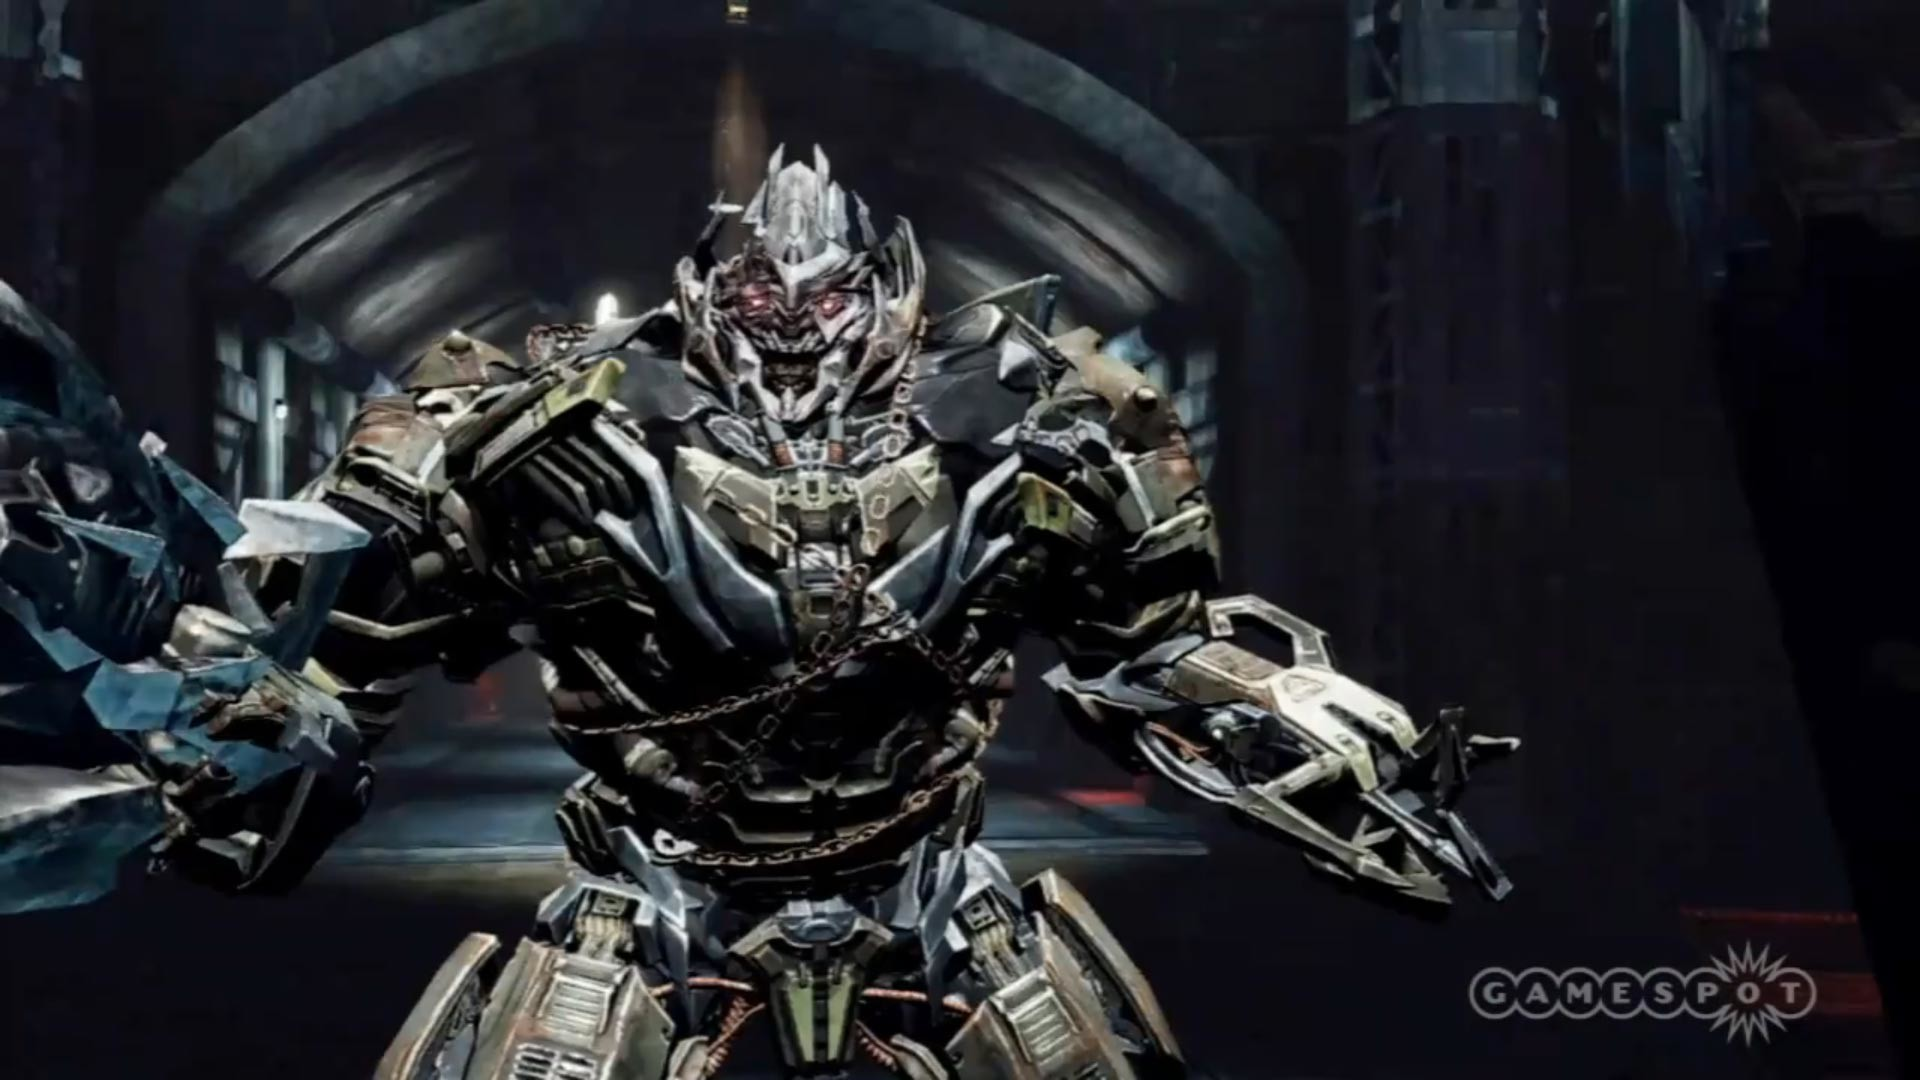 Megatron Wallpapers 61 Images